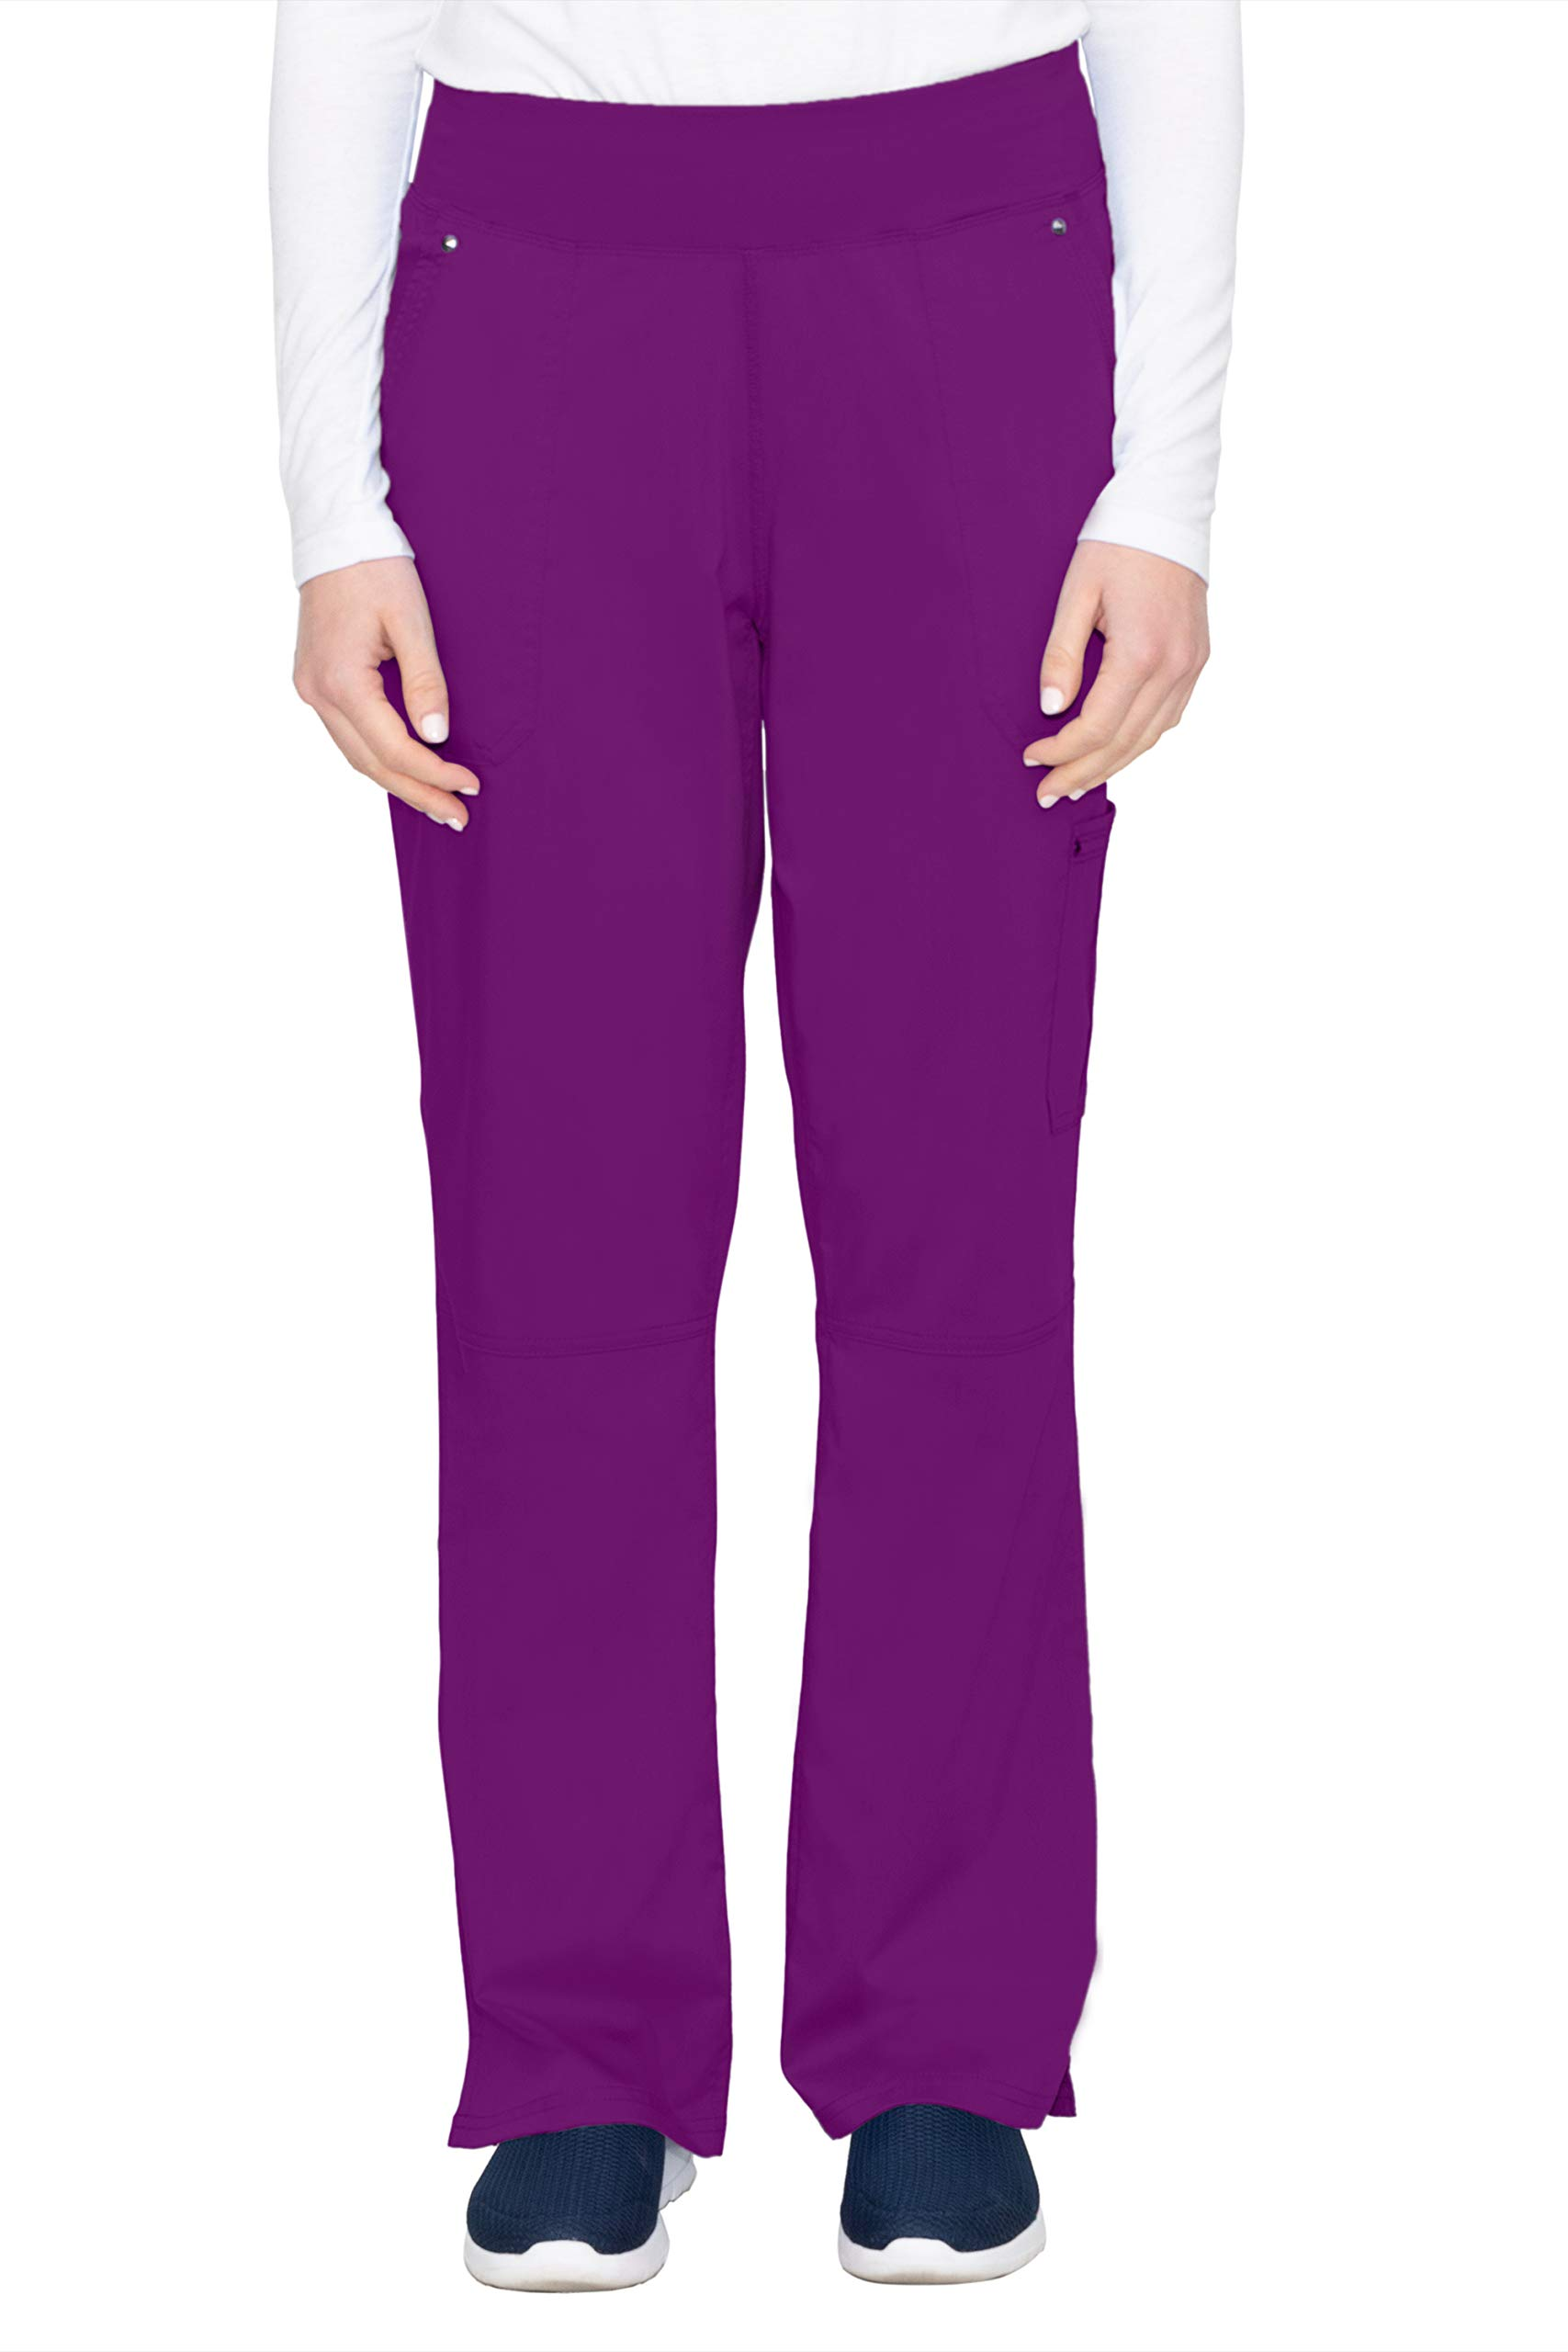 healing hands Purple Label Yoga Women's Tori 9133 5 Pocket Knit Waist Pant